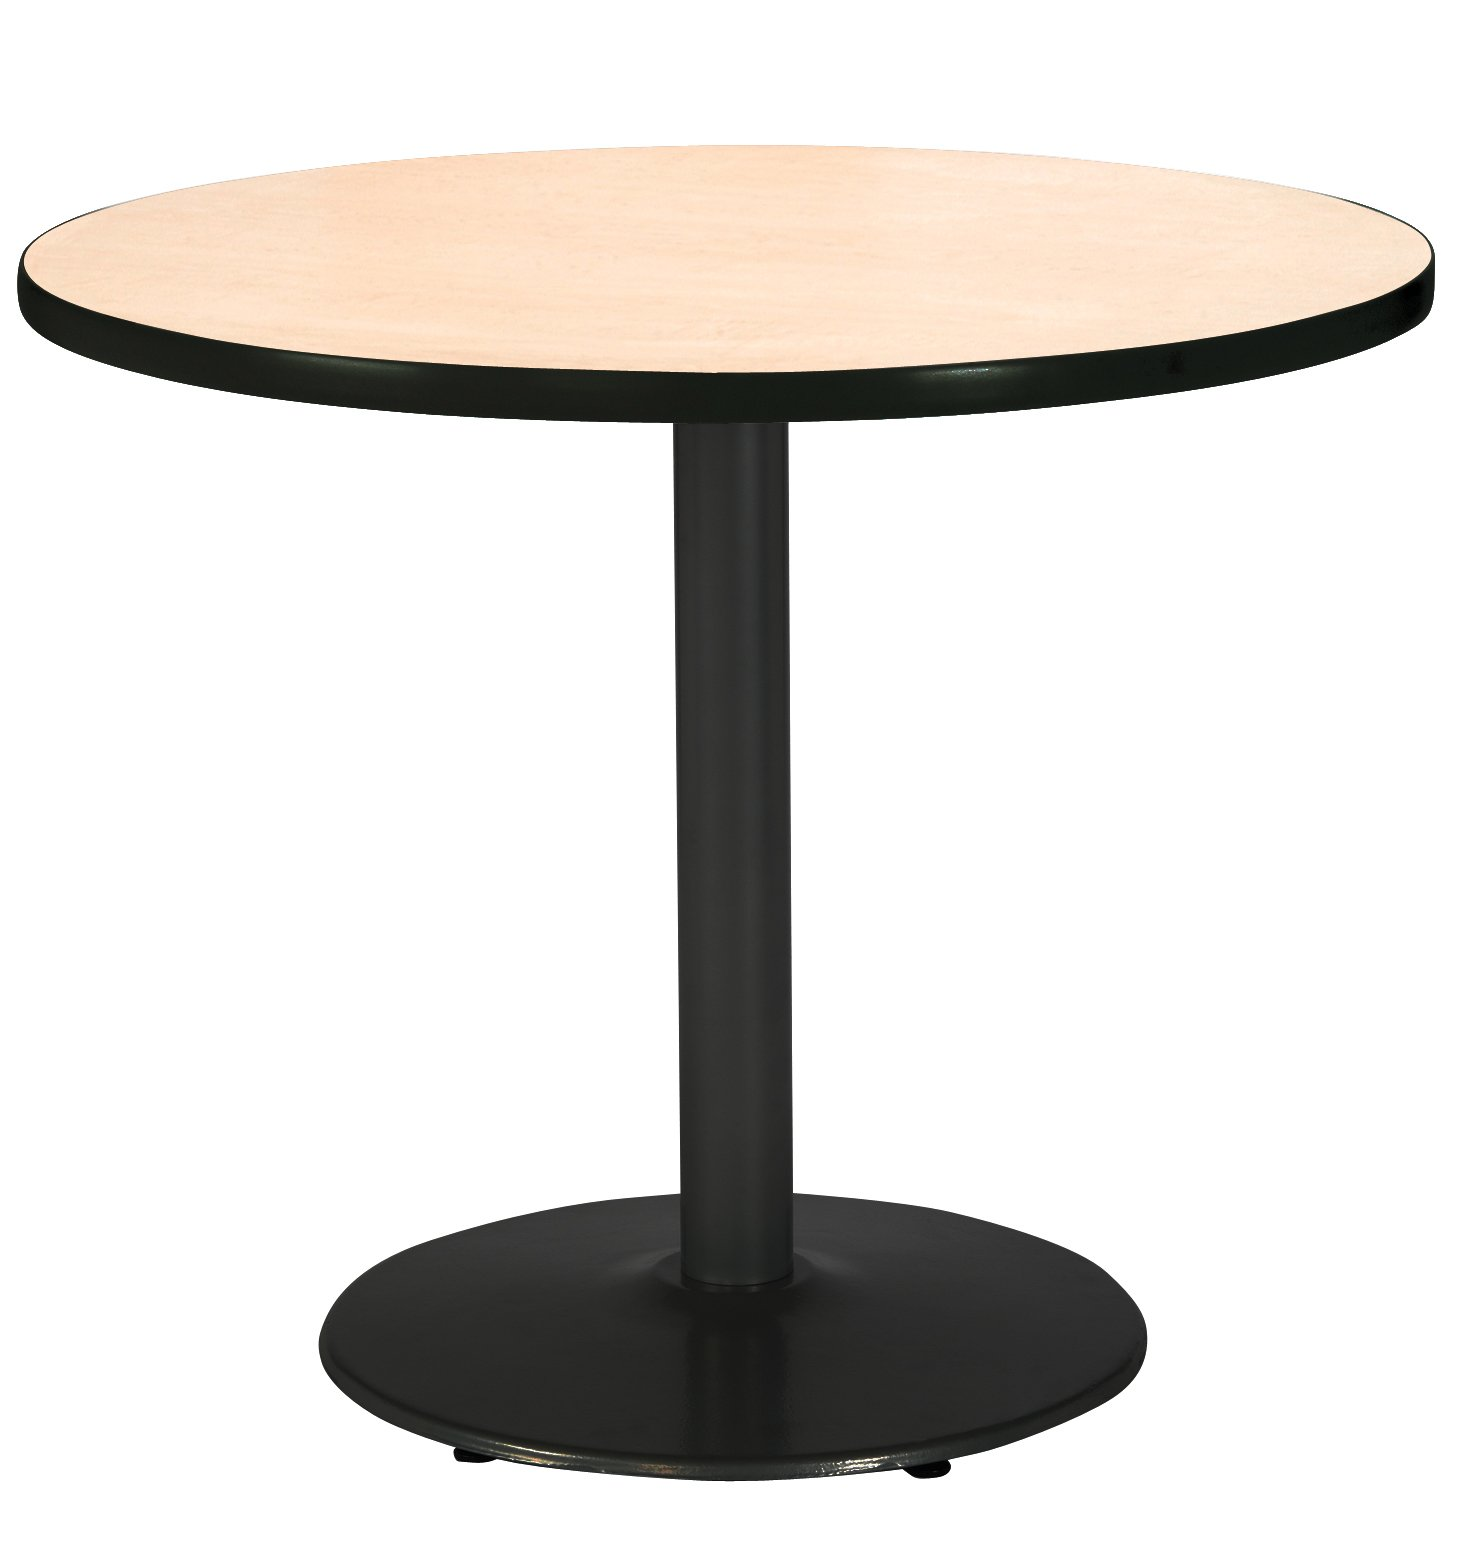 KFI Seating Round Black Base Pedestal Table with Top, Natural, 36'' by KFI Seating